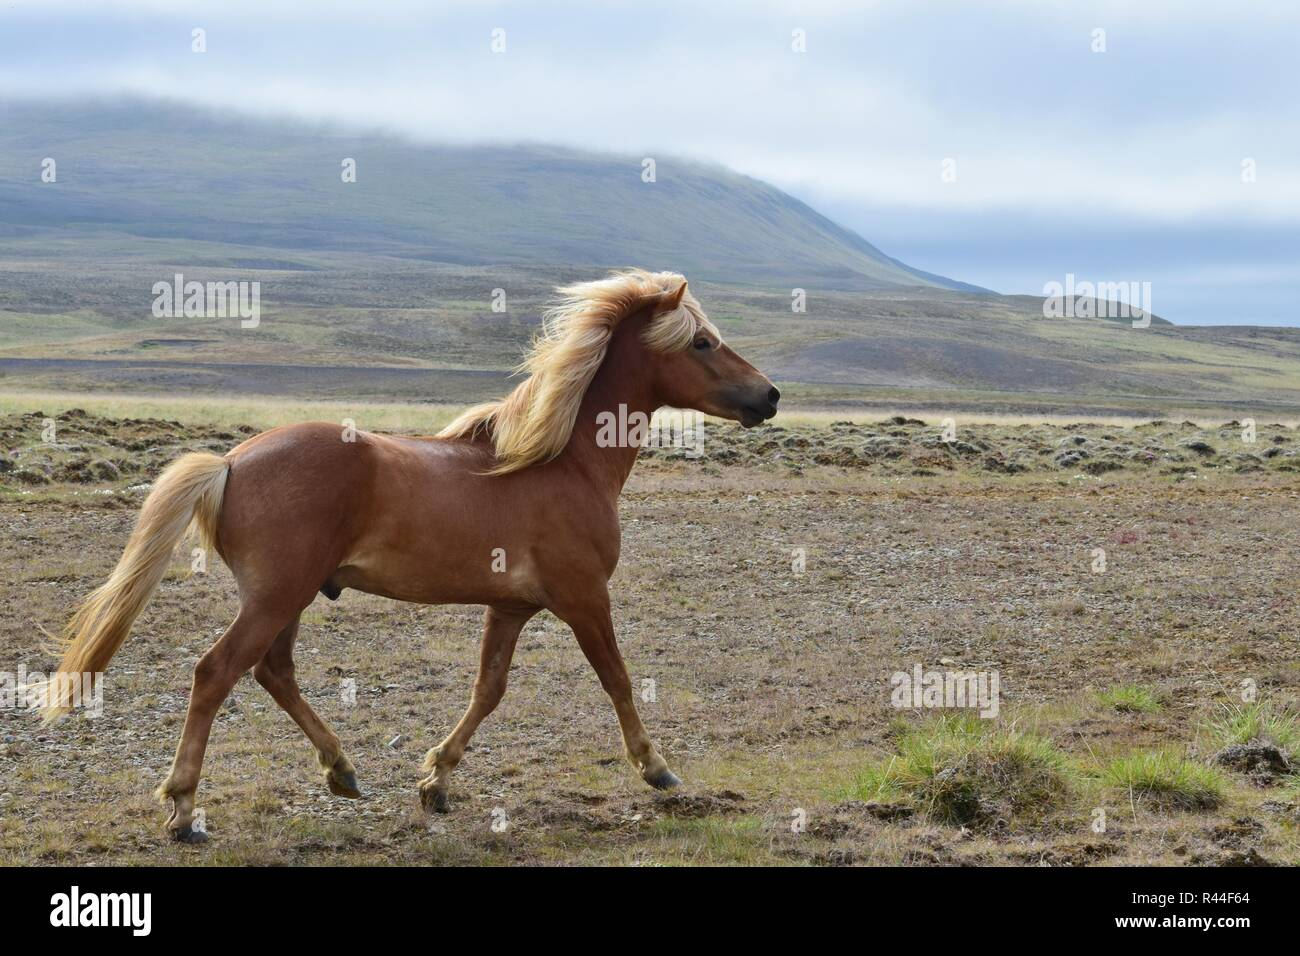 Beautiful Icelandic stallion at a trot, with Icelandic landscape in the background. Flaxen chestnut. - Stock Image